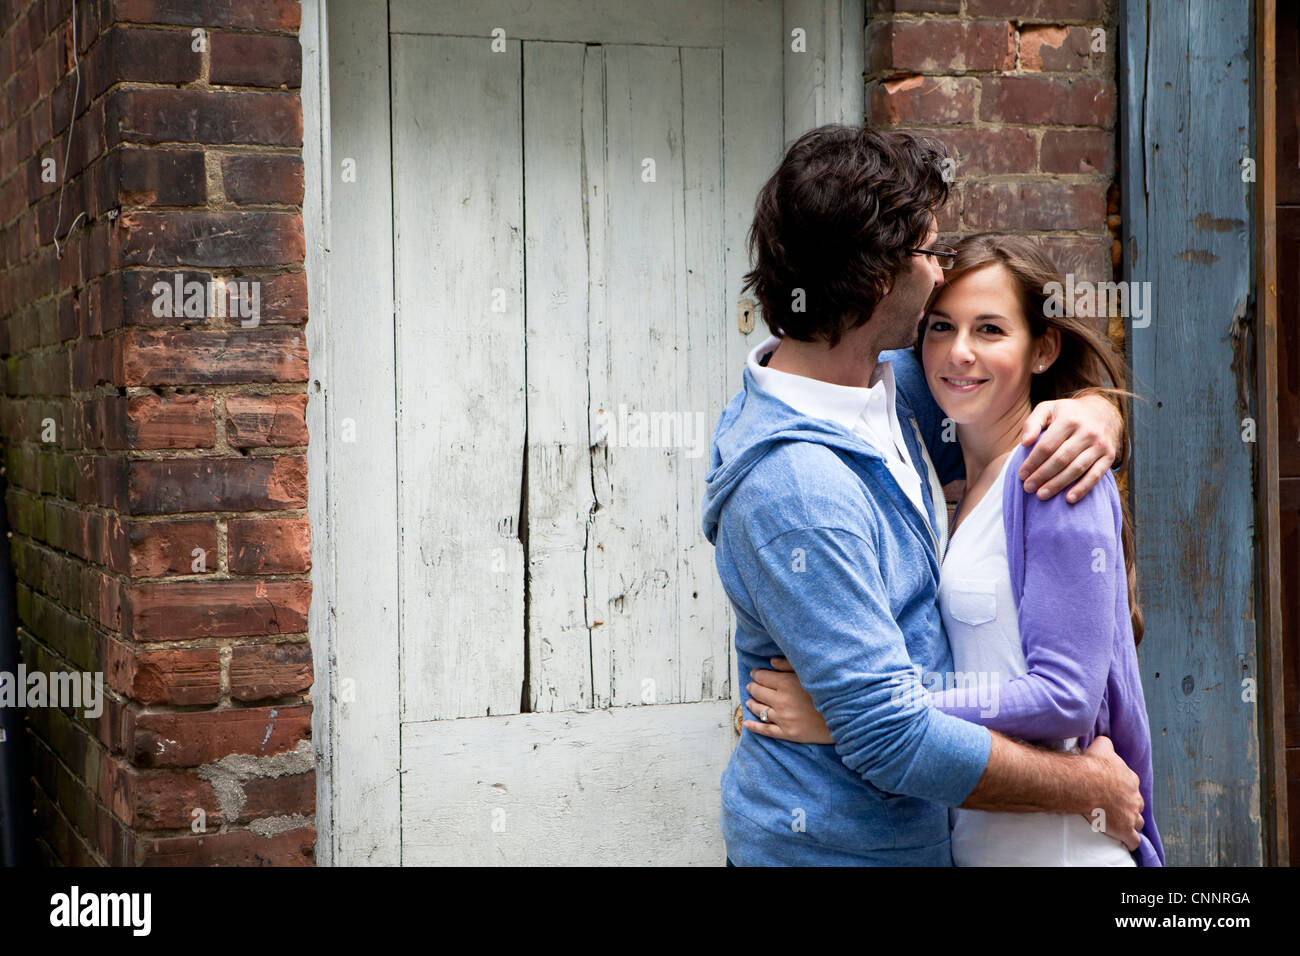 Portrait of Young Couple Embracing in Alleyway Stock Photo